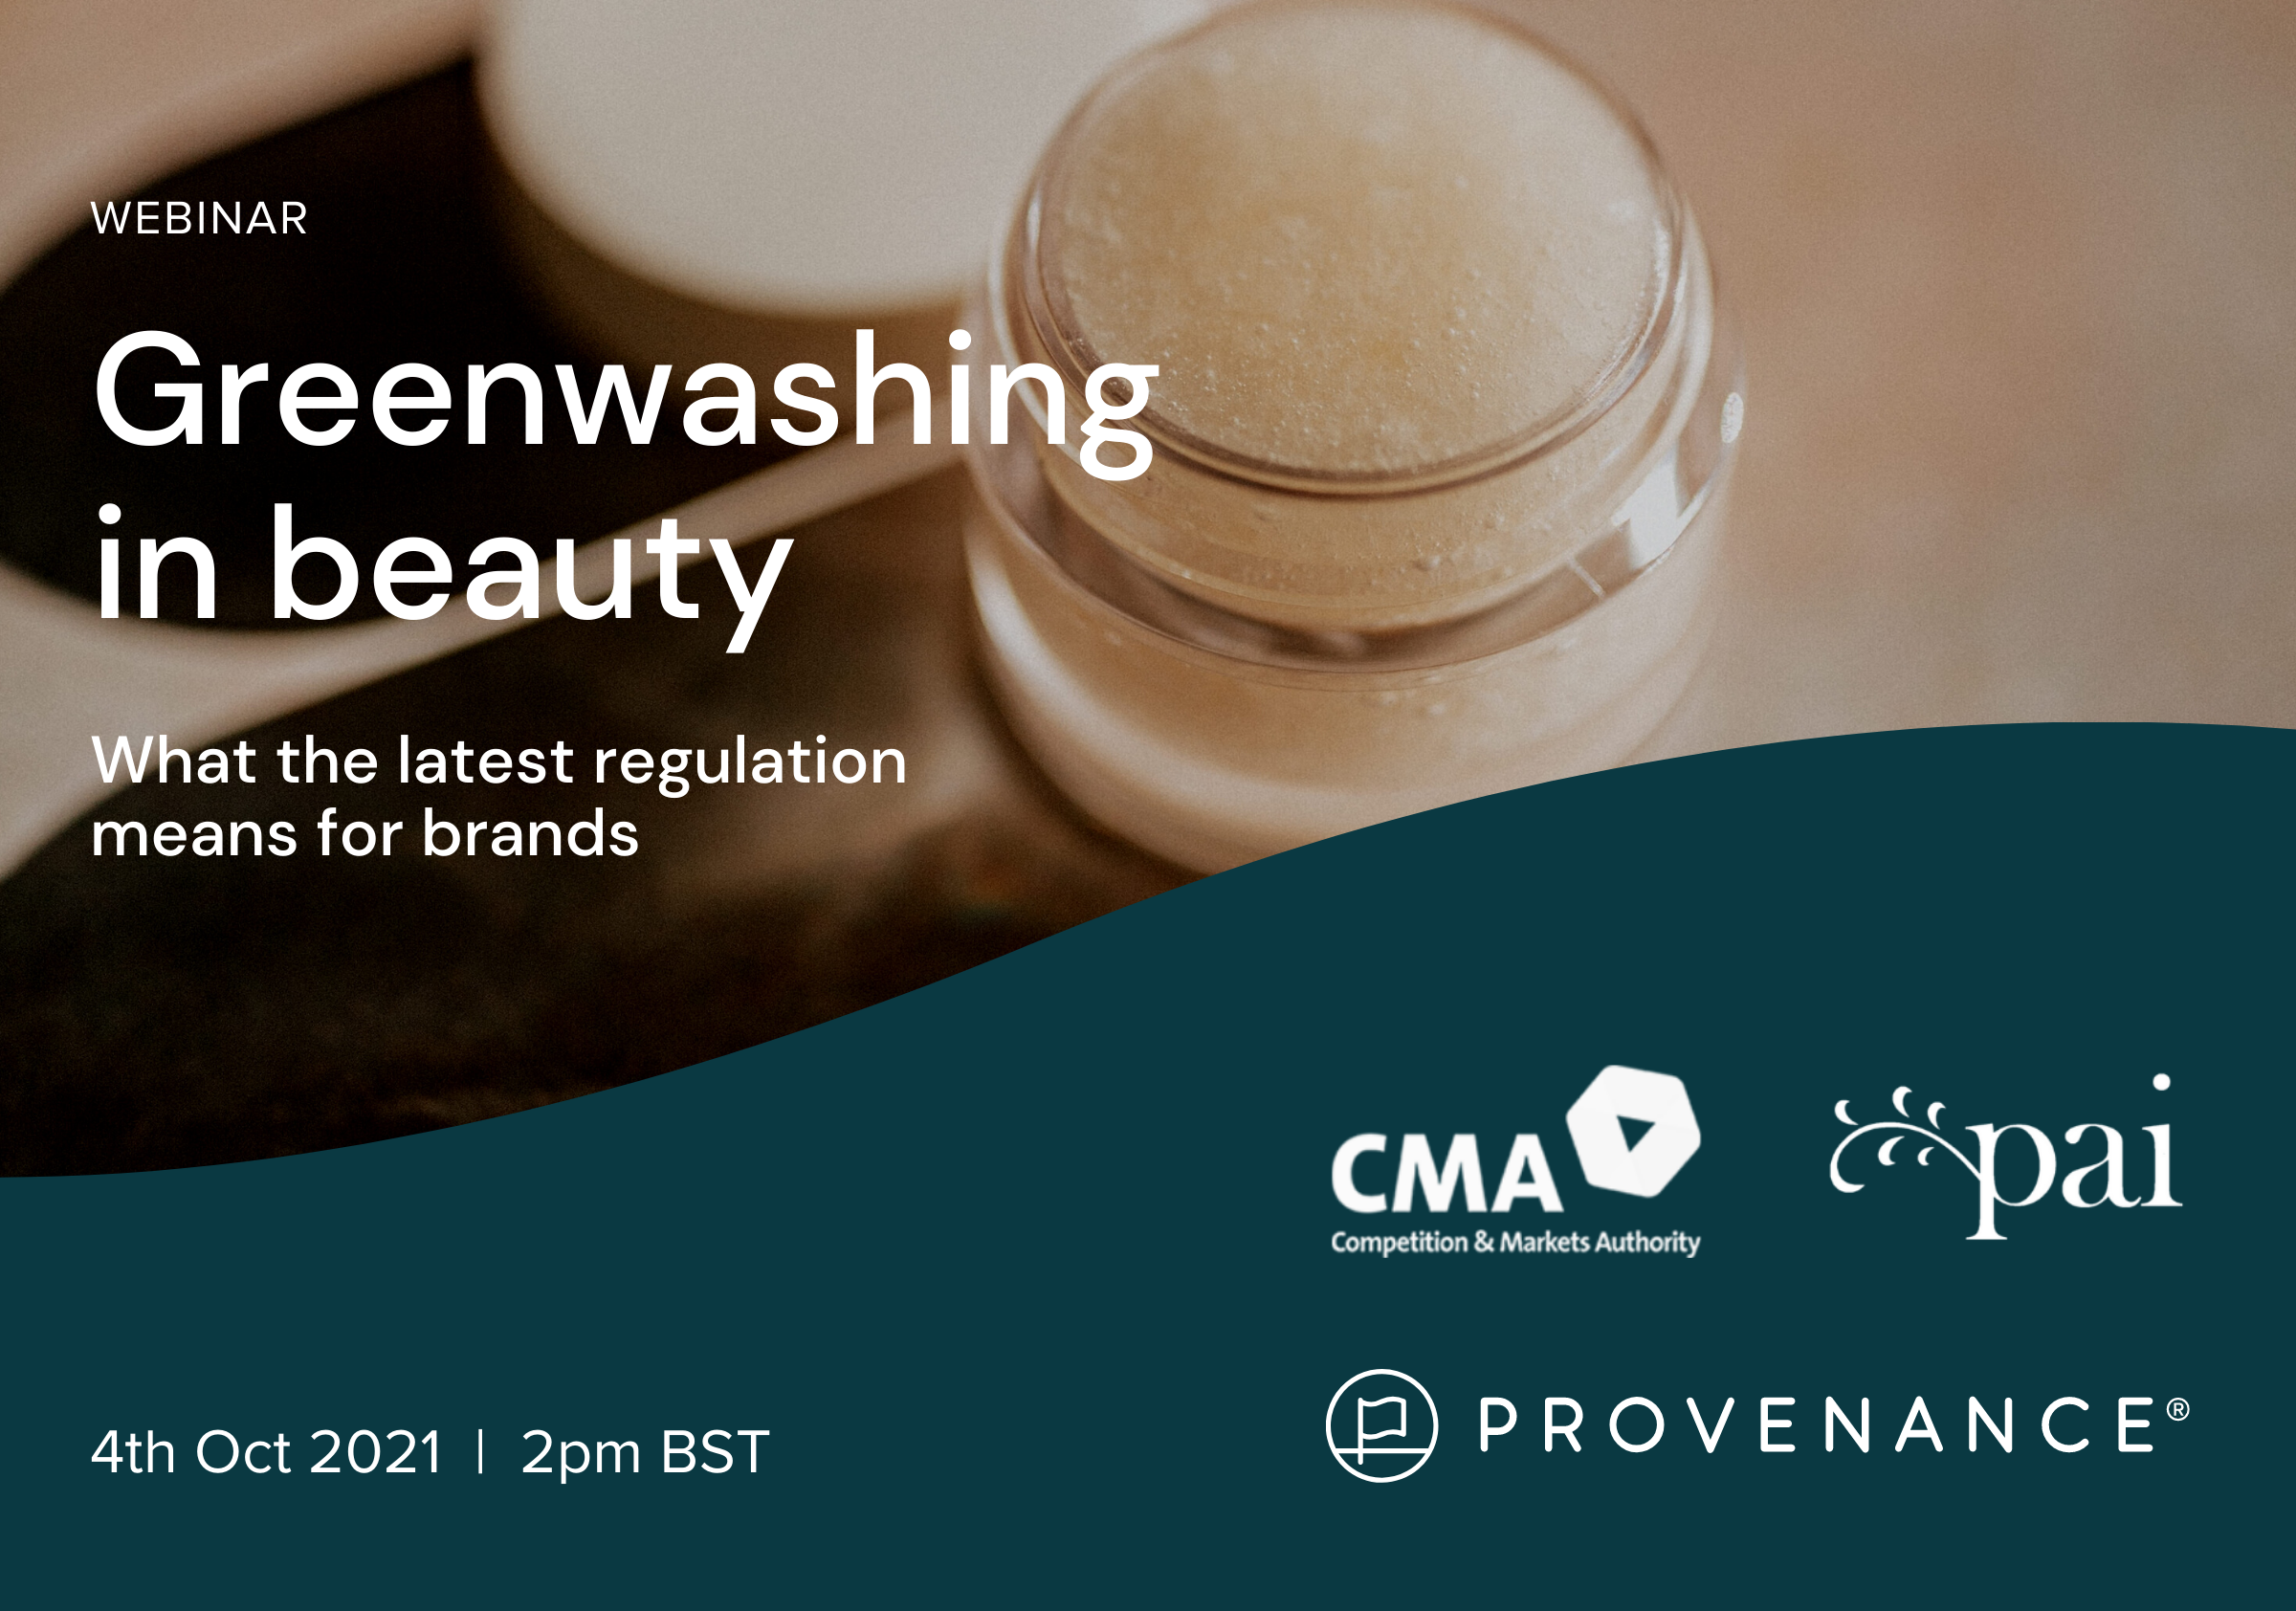 Webinar: Greenwashing in beauty – what the latest regulation means for brands